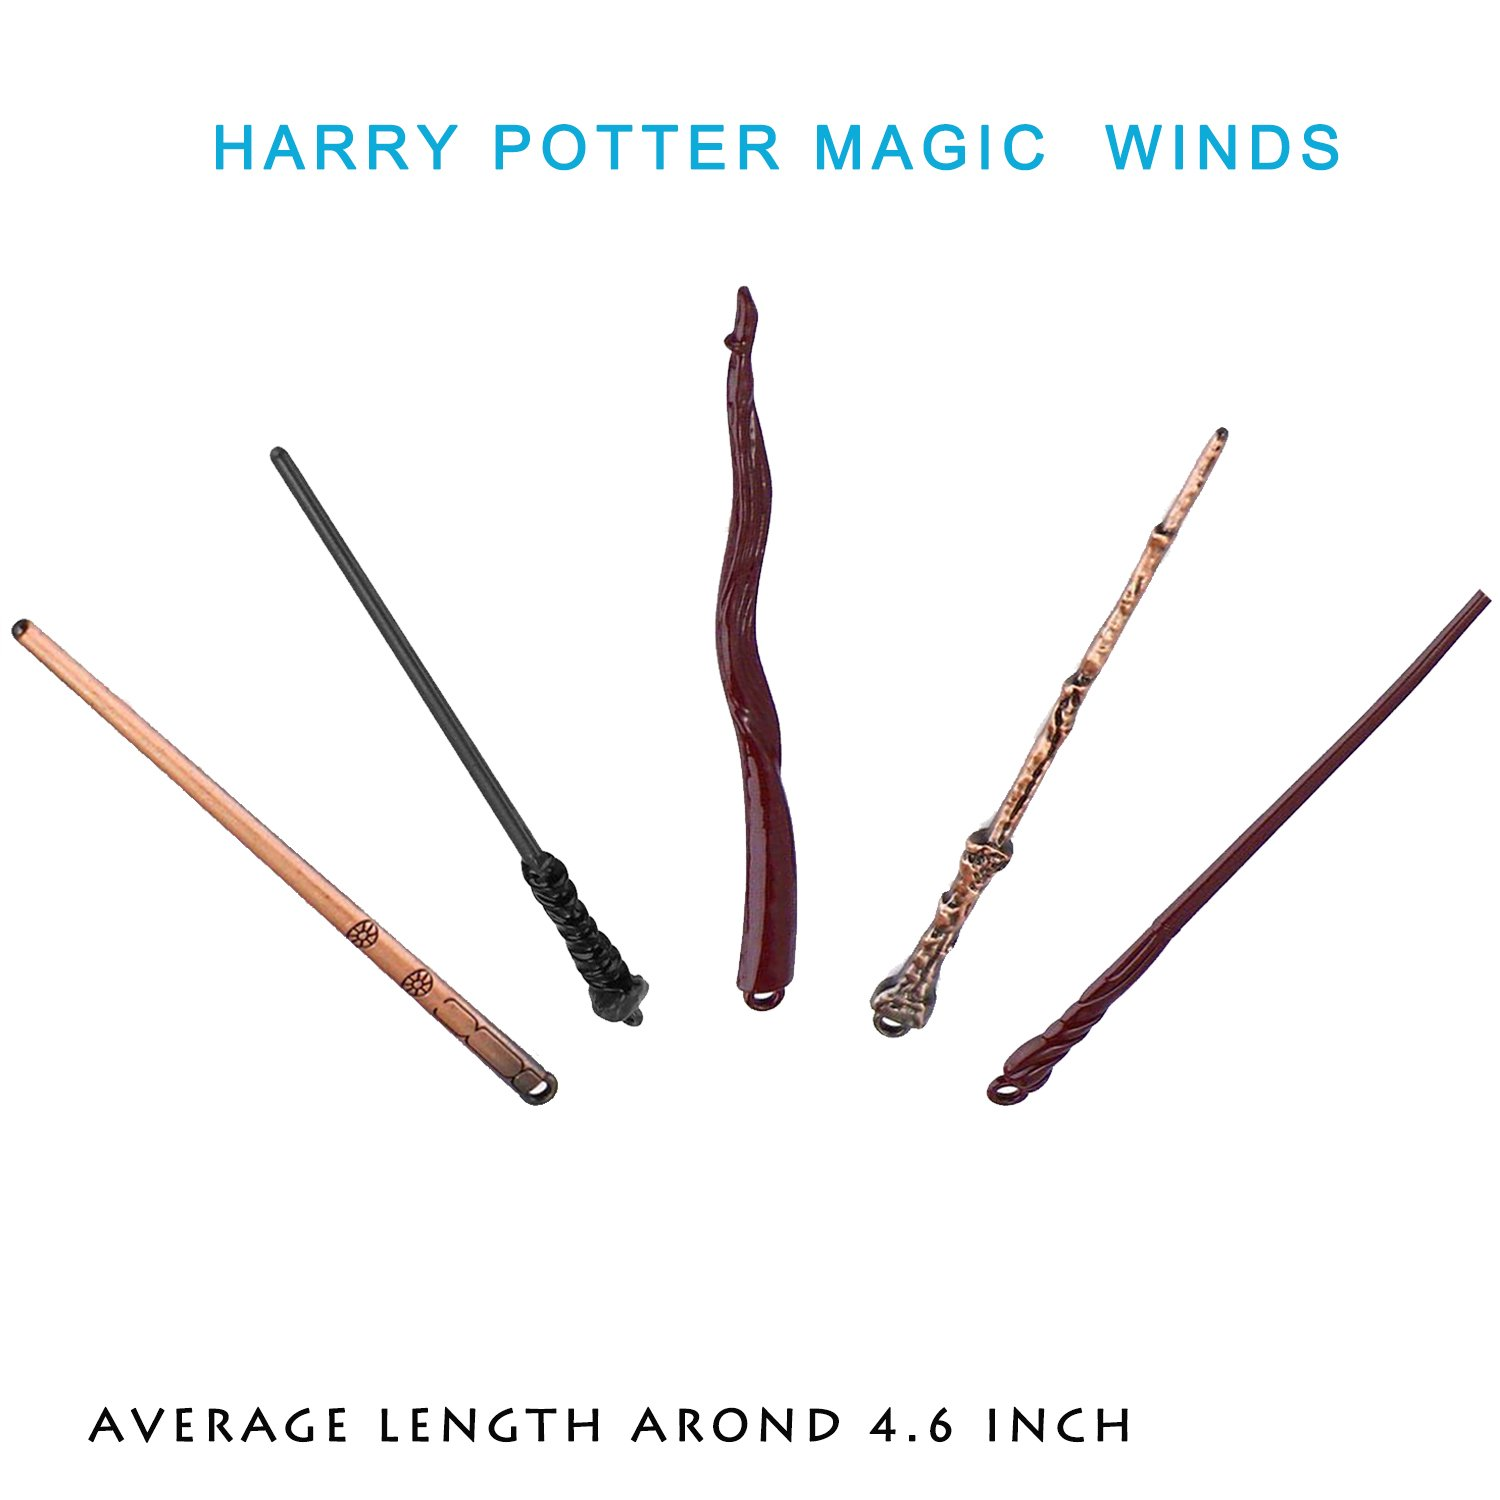 13 Styles Creative Cosplay Harry Potter Series Magic Wands New with Metal Core Magical Wands with Keychain Necklace for Kids by Harmoos (Image #5)